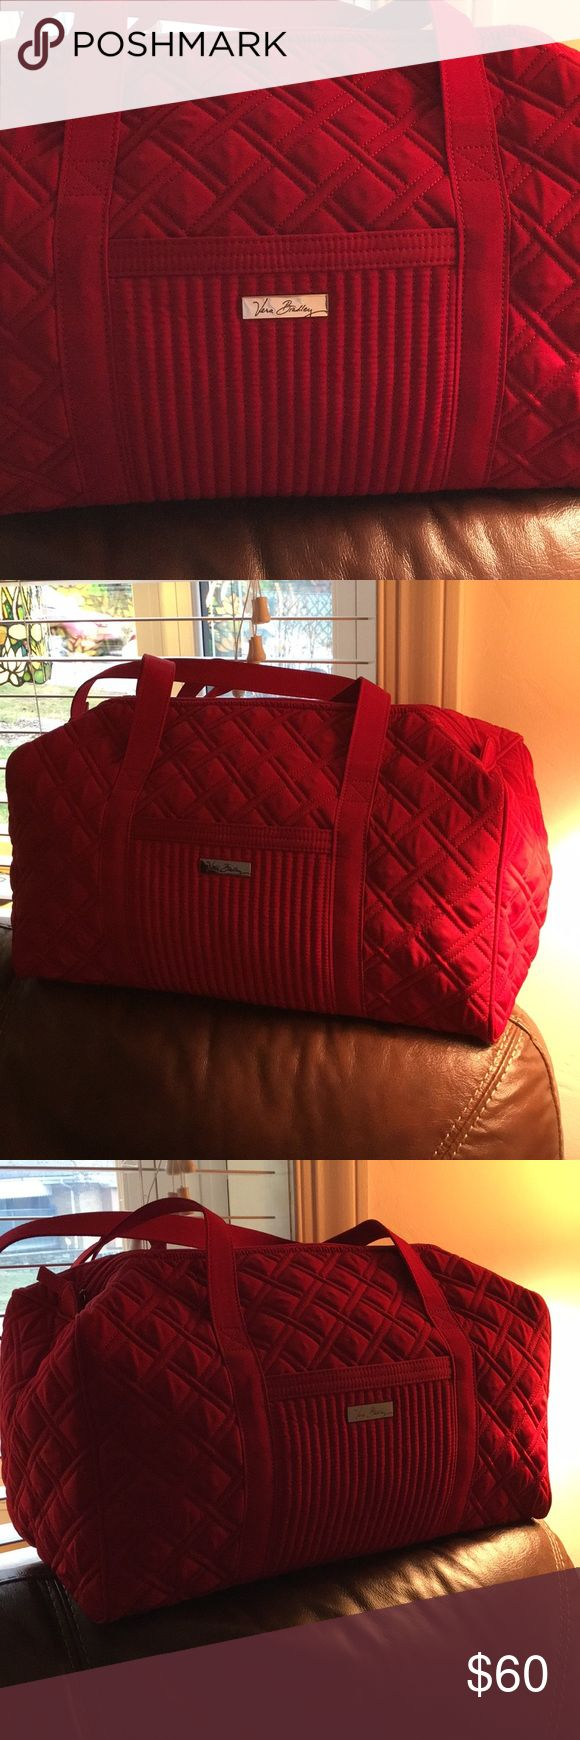 Vera Bradley duffel bag New. Never used. Beautiful red quilted bag. Zip closure. Measures 18 inches long. 8 inch diameter and 9 inches high. Don't have original tag. Vera Bradley Bags Travel Bags